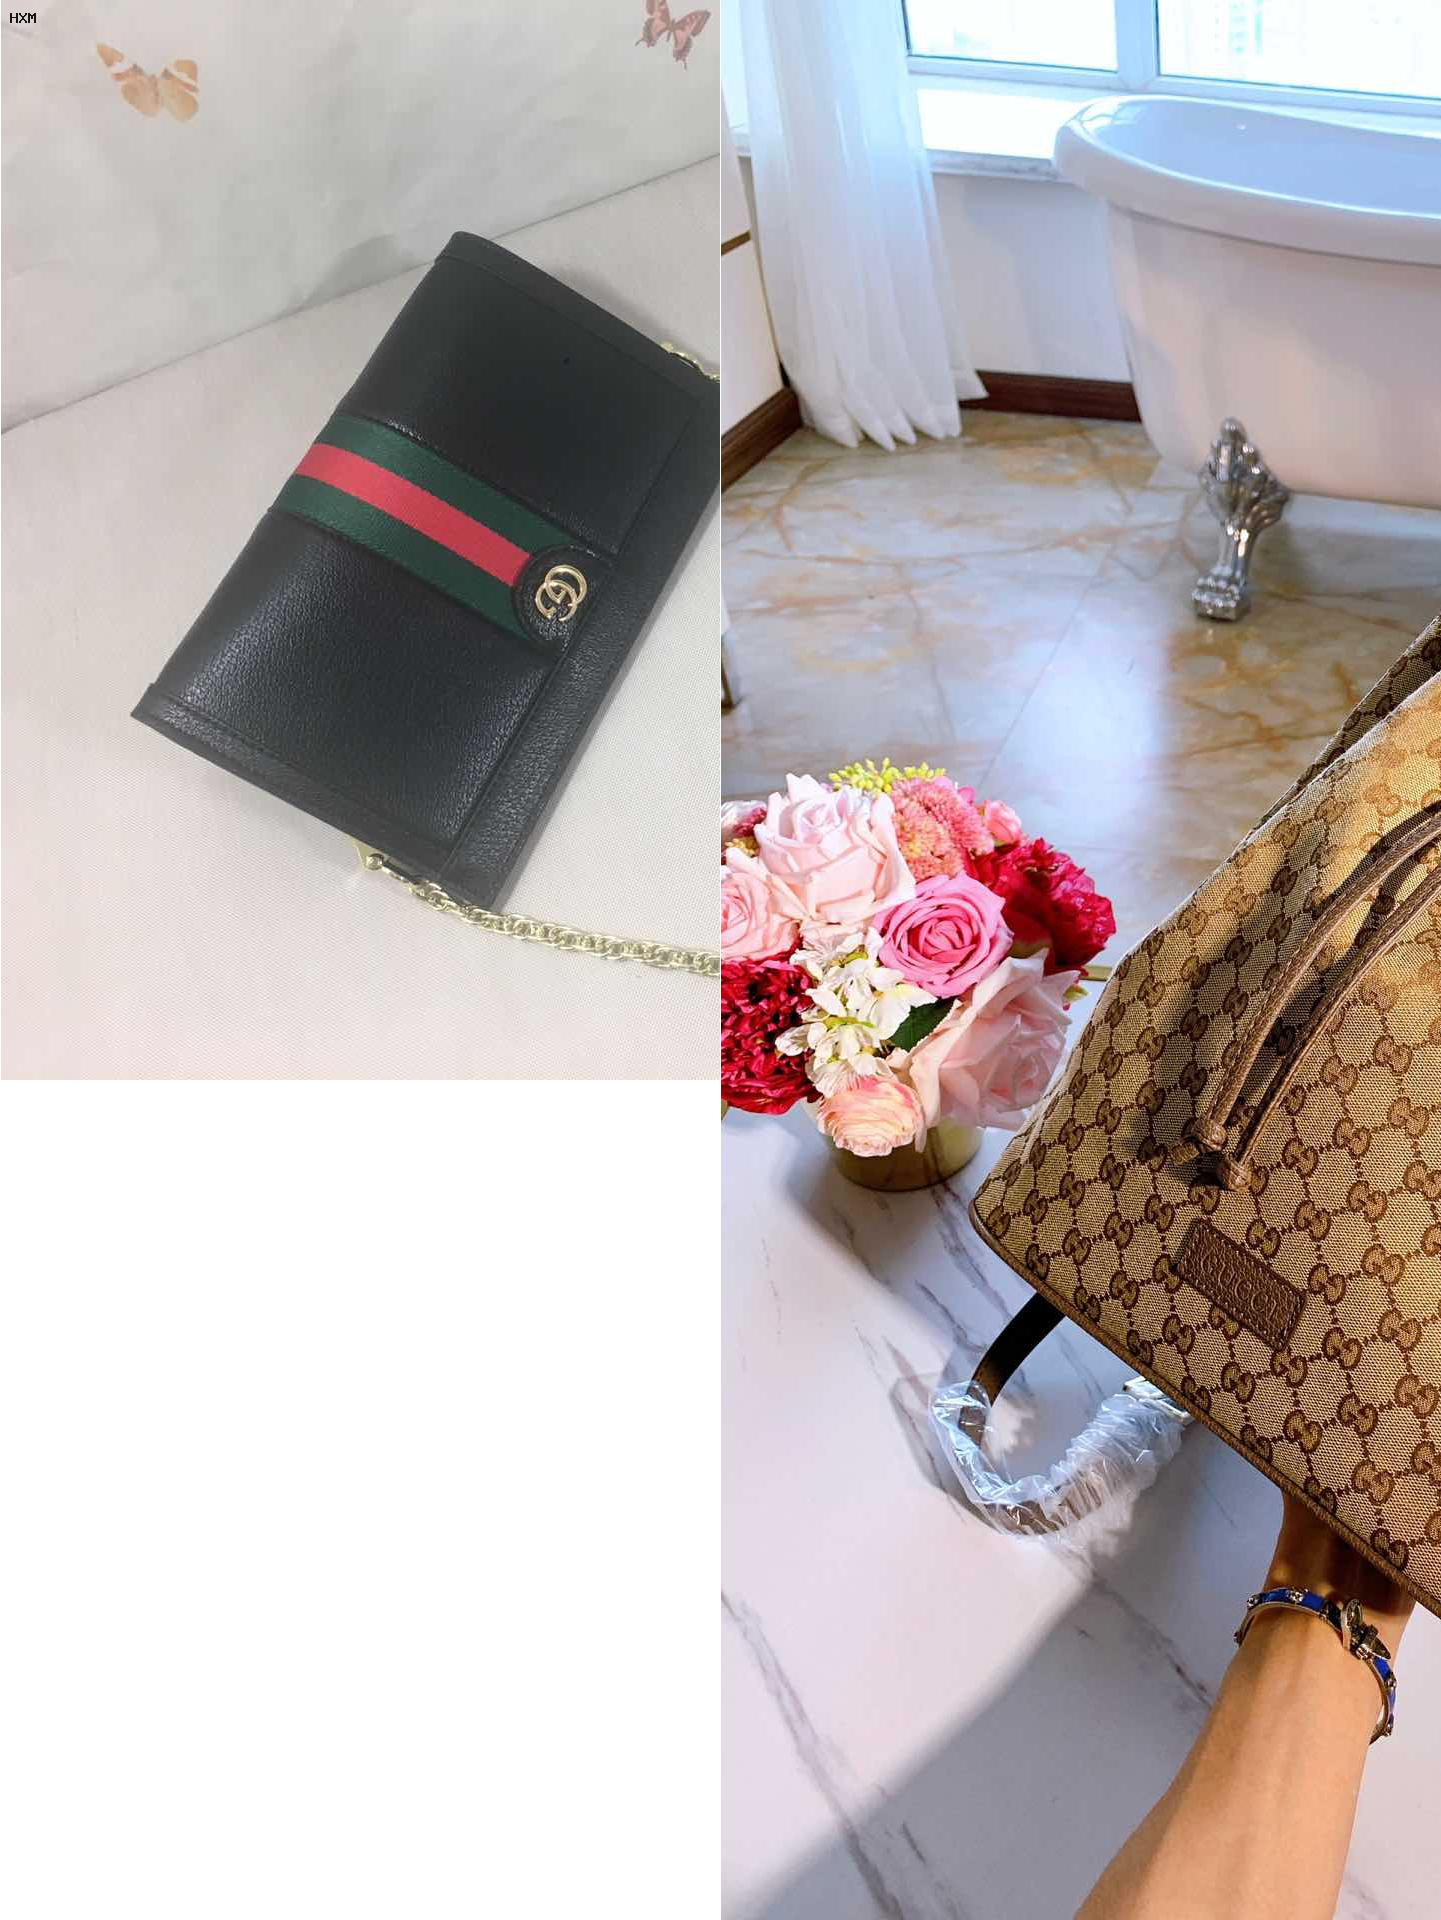 banane gucci homme fausse